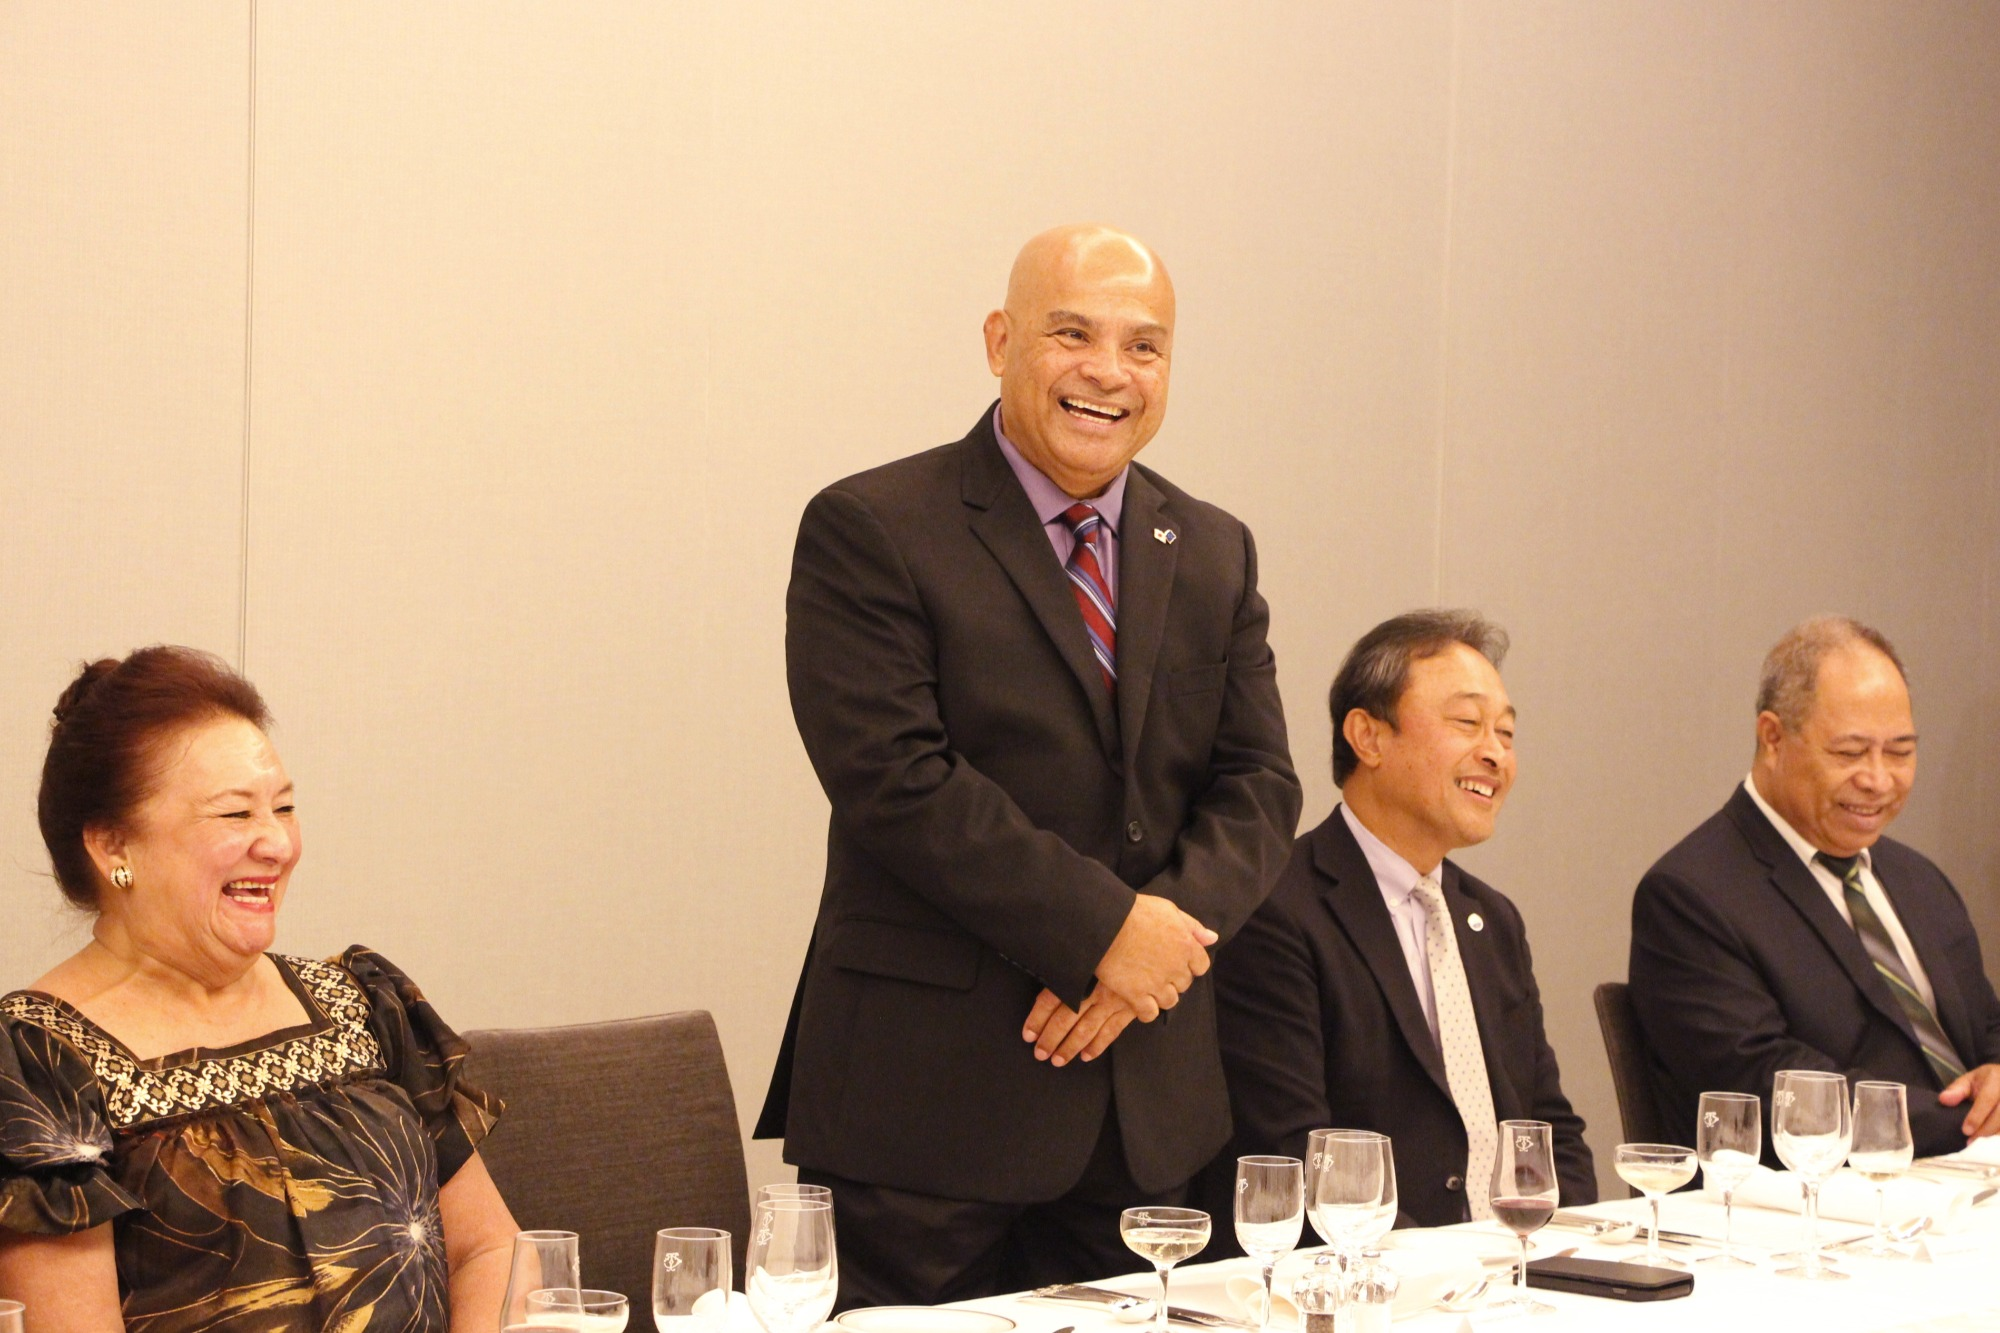 Federated States of Micronesia President Panuelo Reception